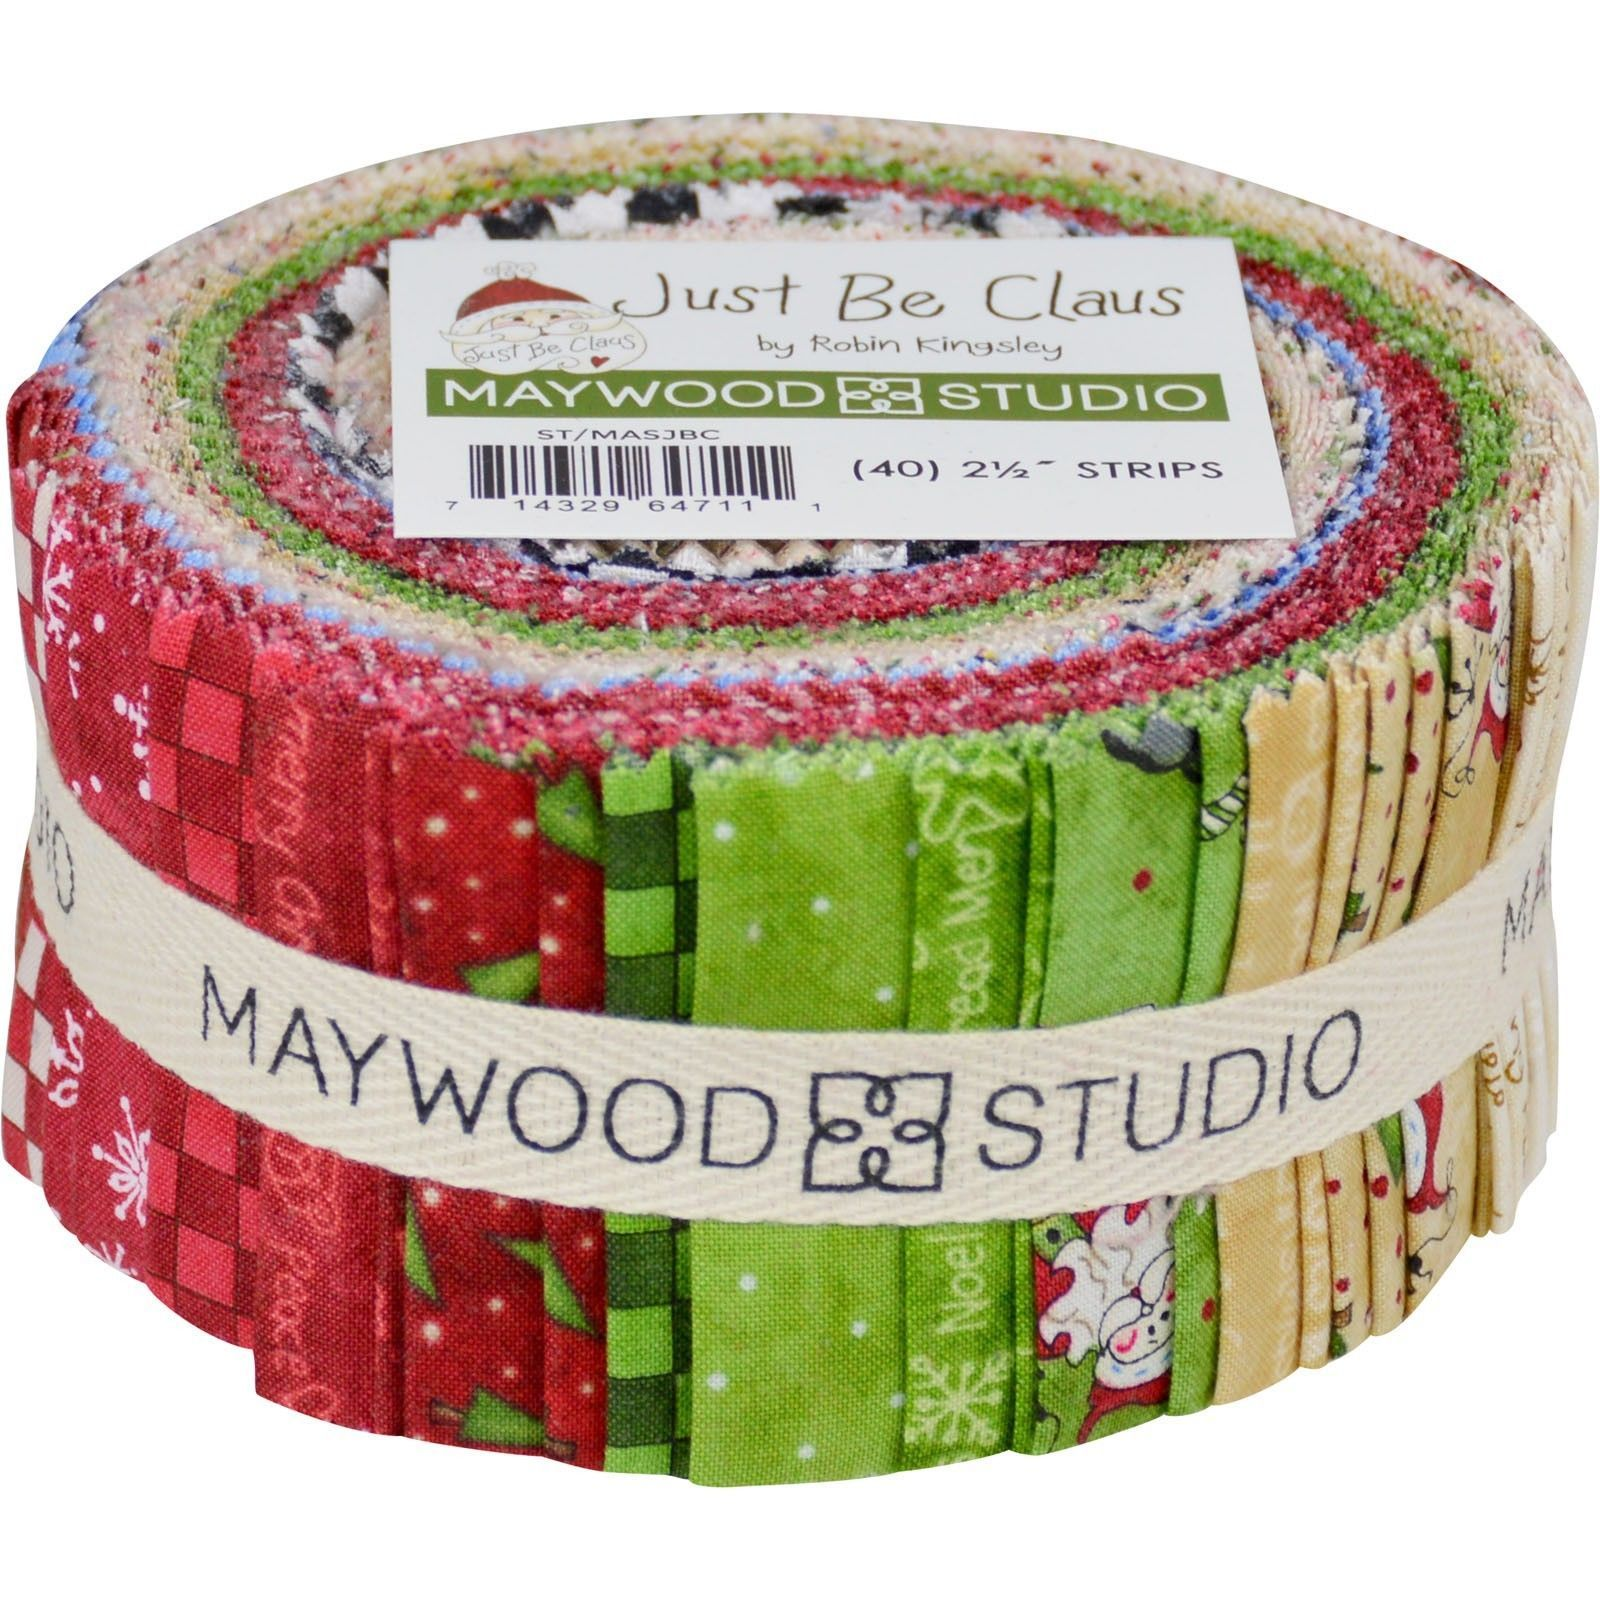 fabric 28162 just be claus christmas jelly roll fabric 40 strips 25 w x 44 maywood studio buy it now only 37 on ebay